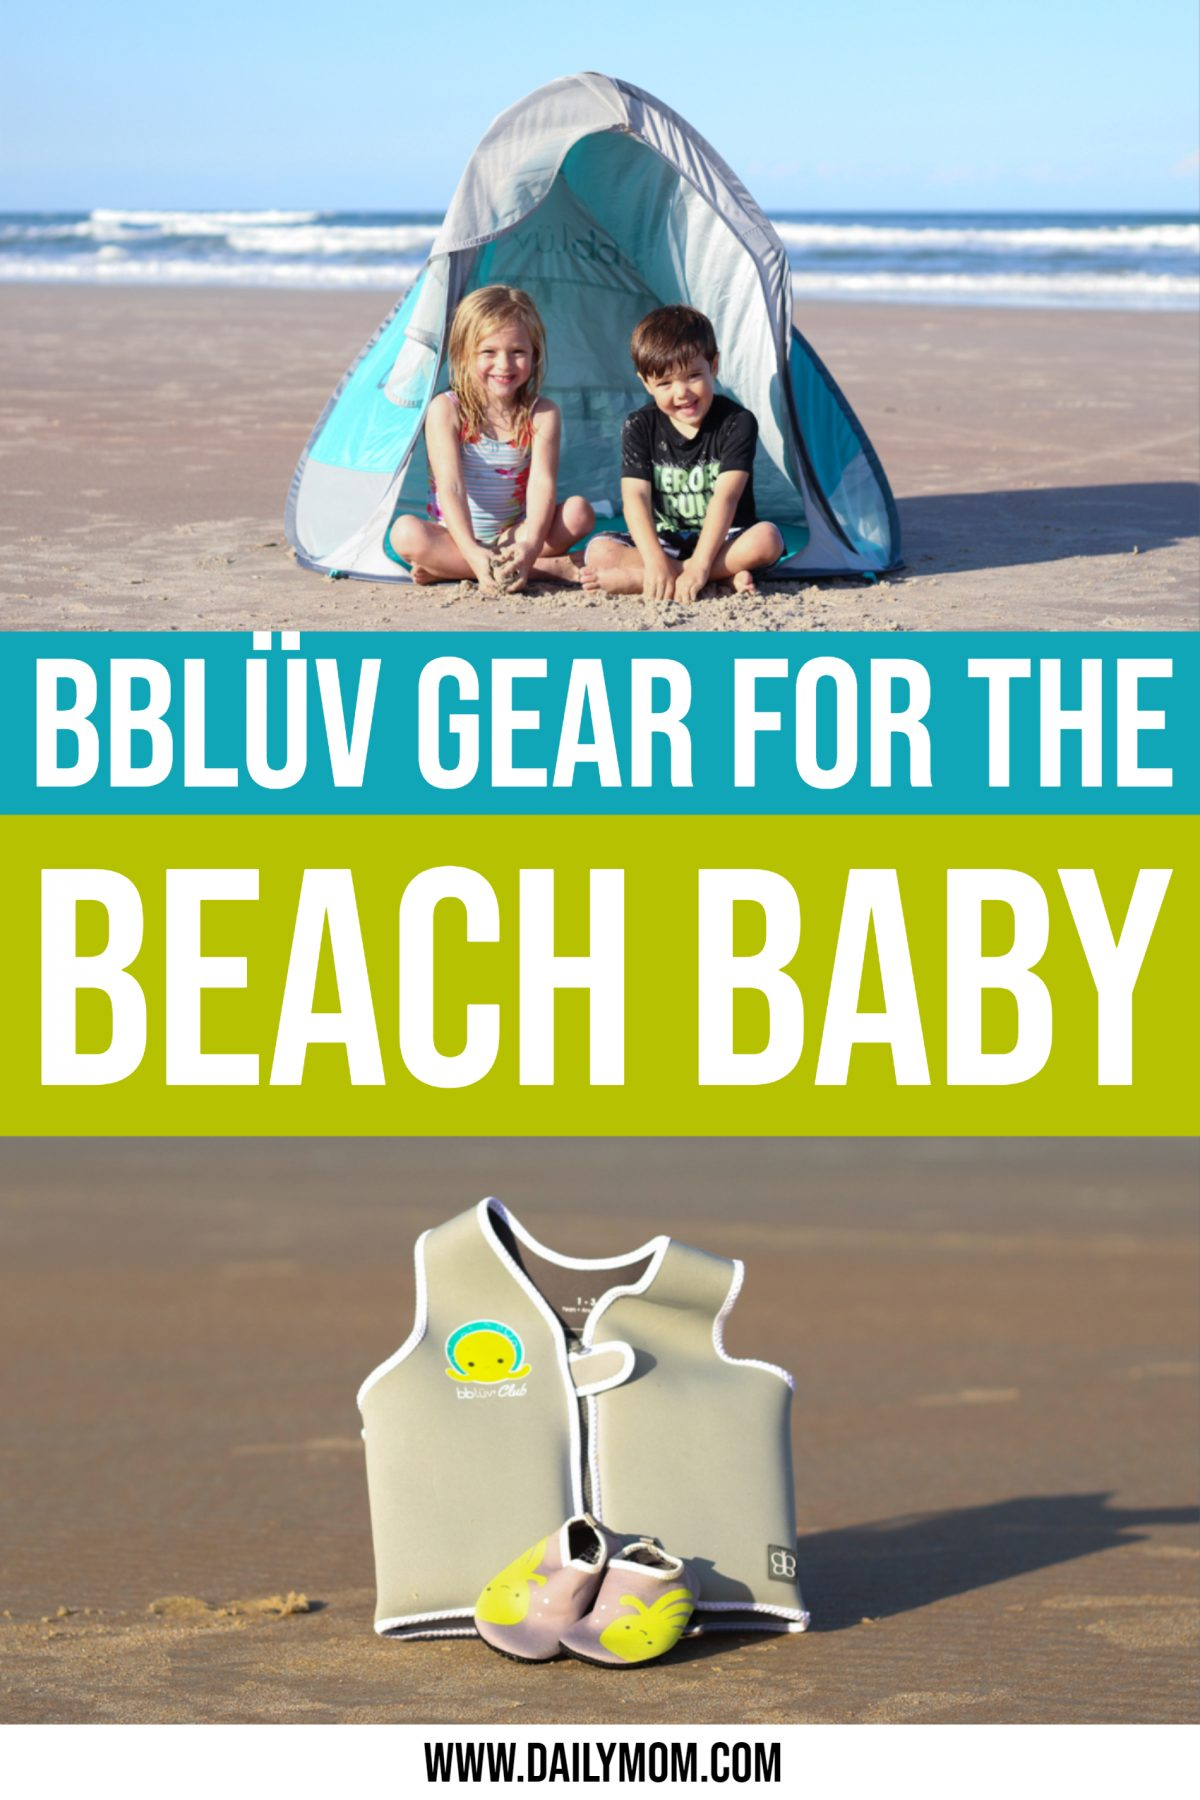 Daily Mom Parent Portal BblÜv Gear For The Beach Baby